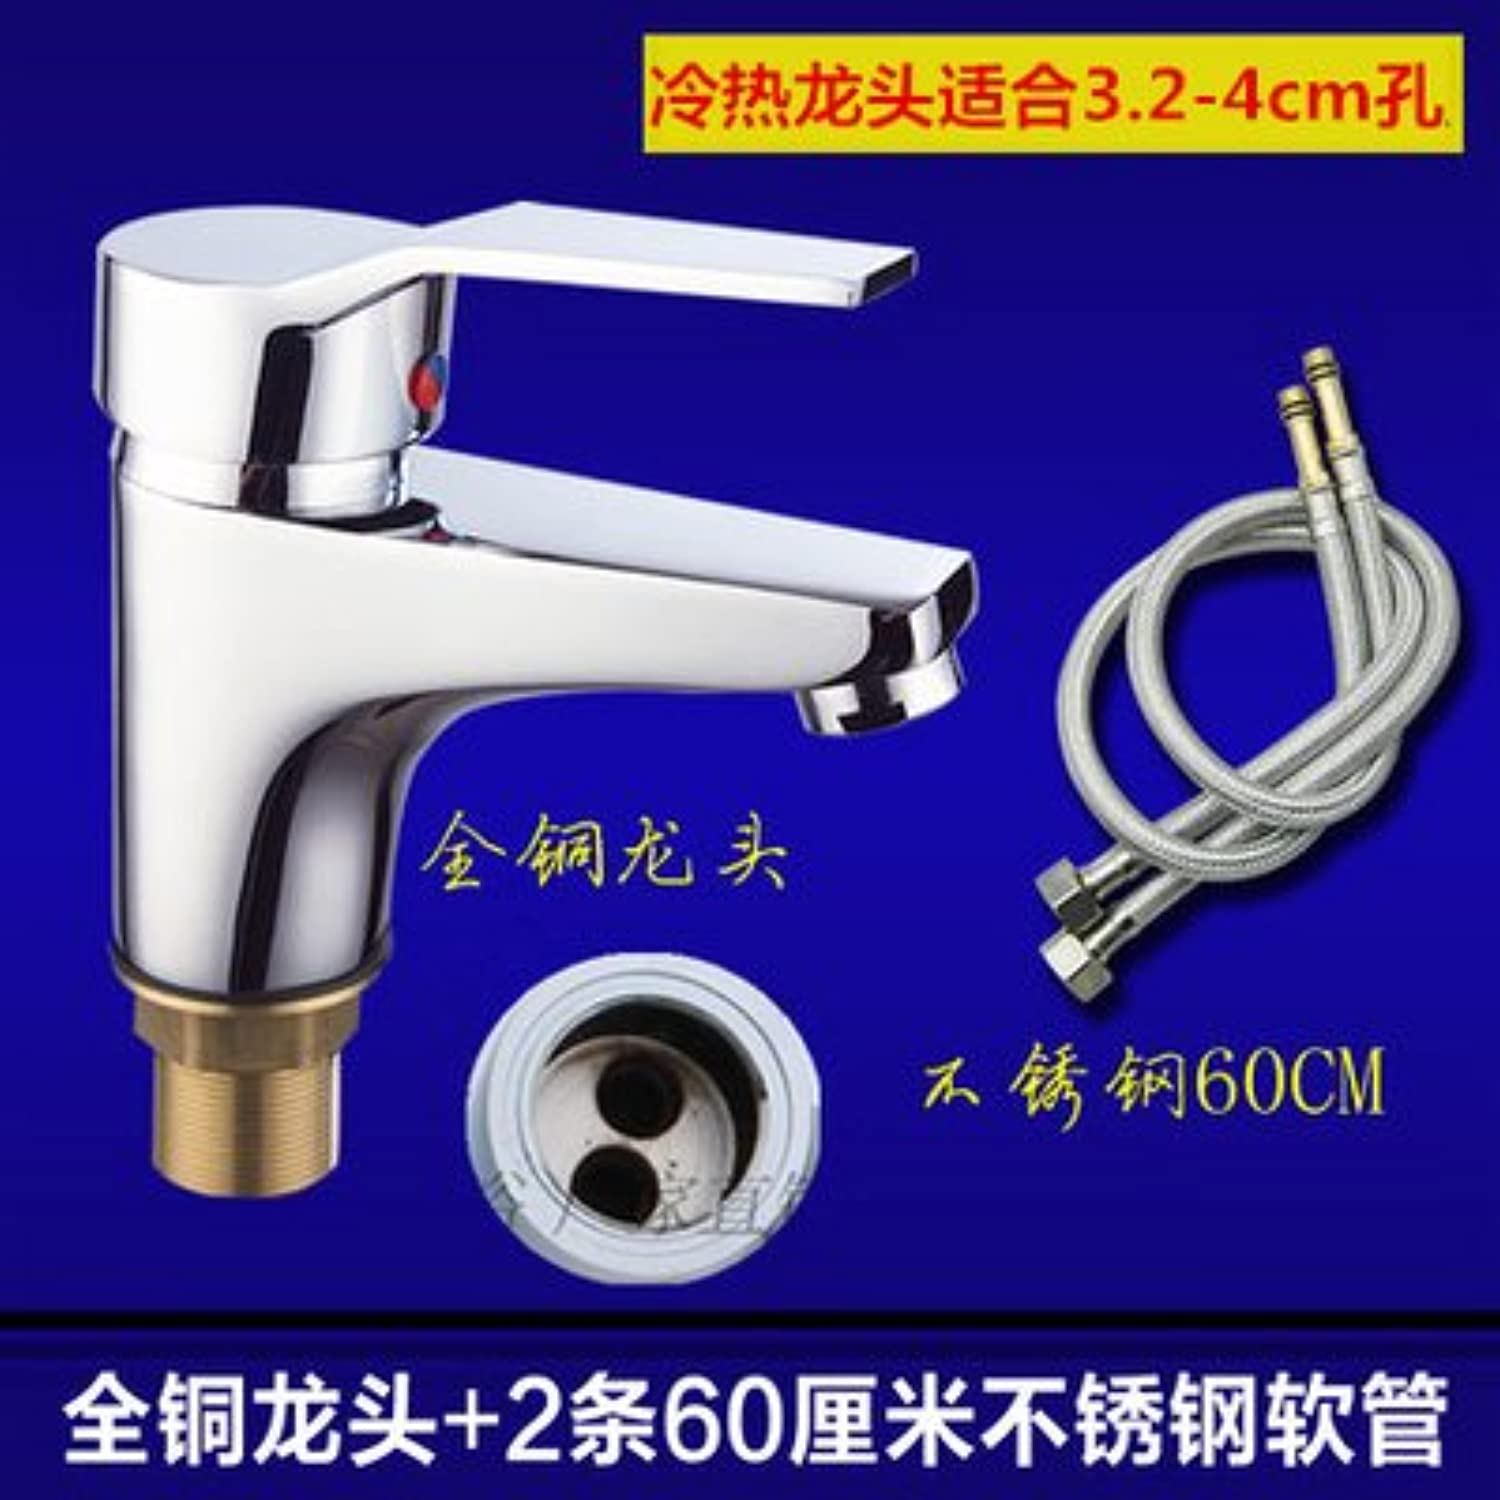 JWLT All copper bathtub, single cold water faucet, pottery basin washbasin, single bath, washbasin, single hole, cold and hot faucet,All copper faucet 60 inlet pipe (cold and hot type)